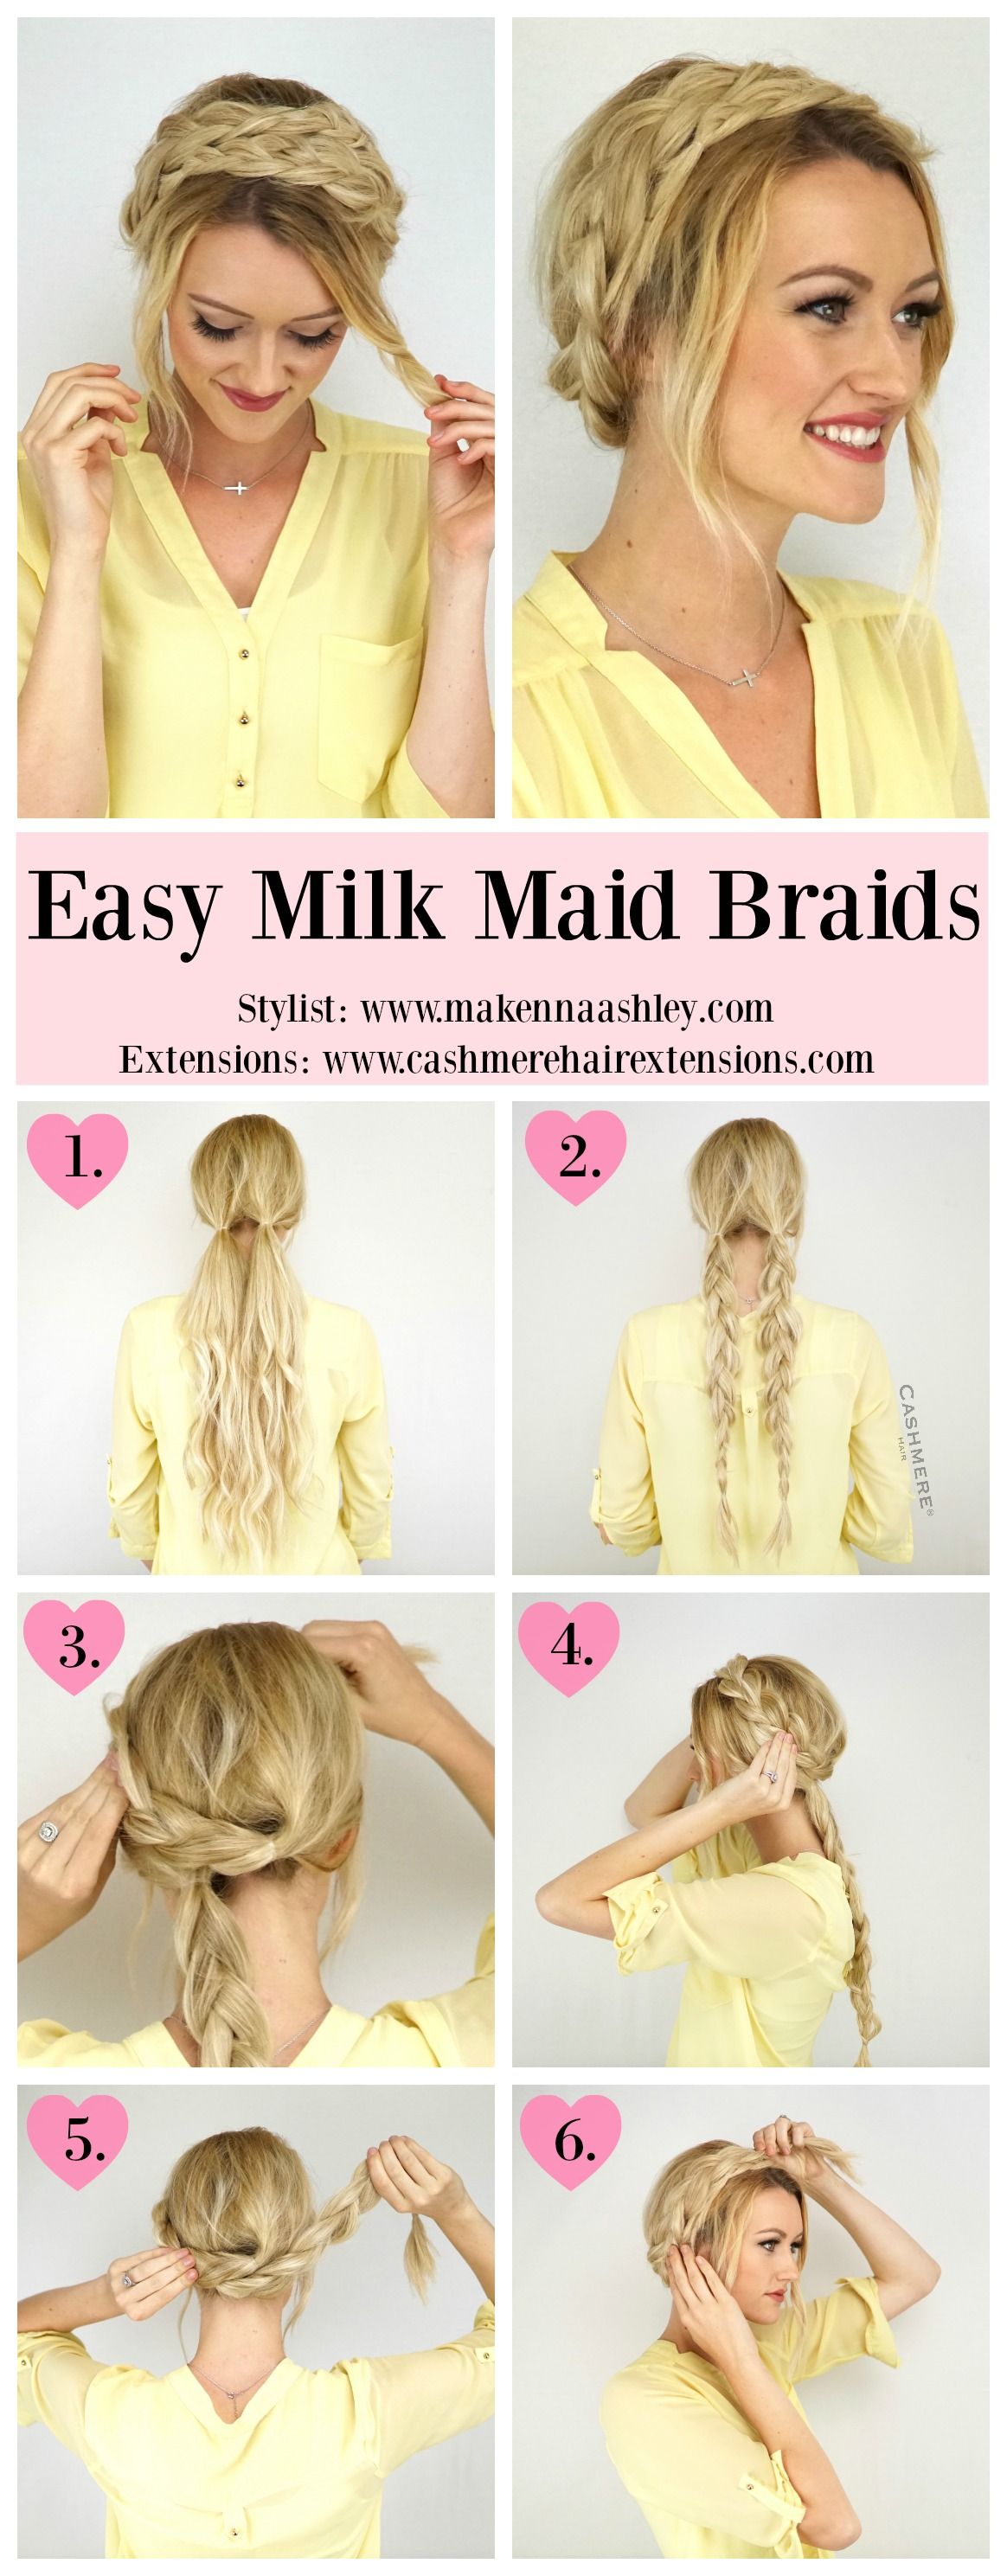 Milk Maid Braids